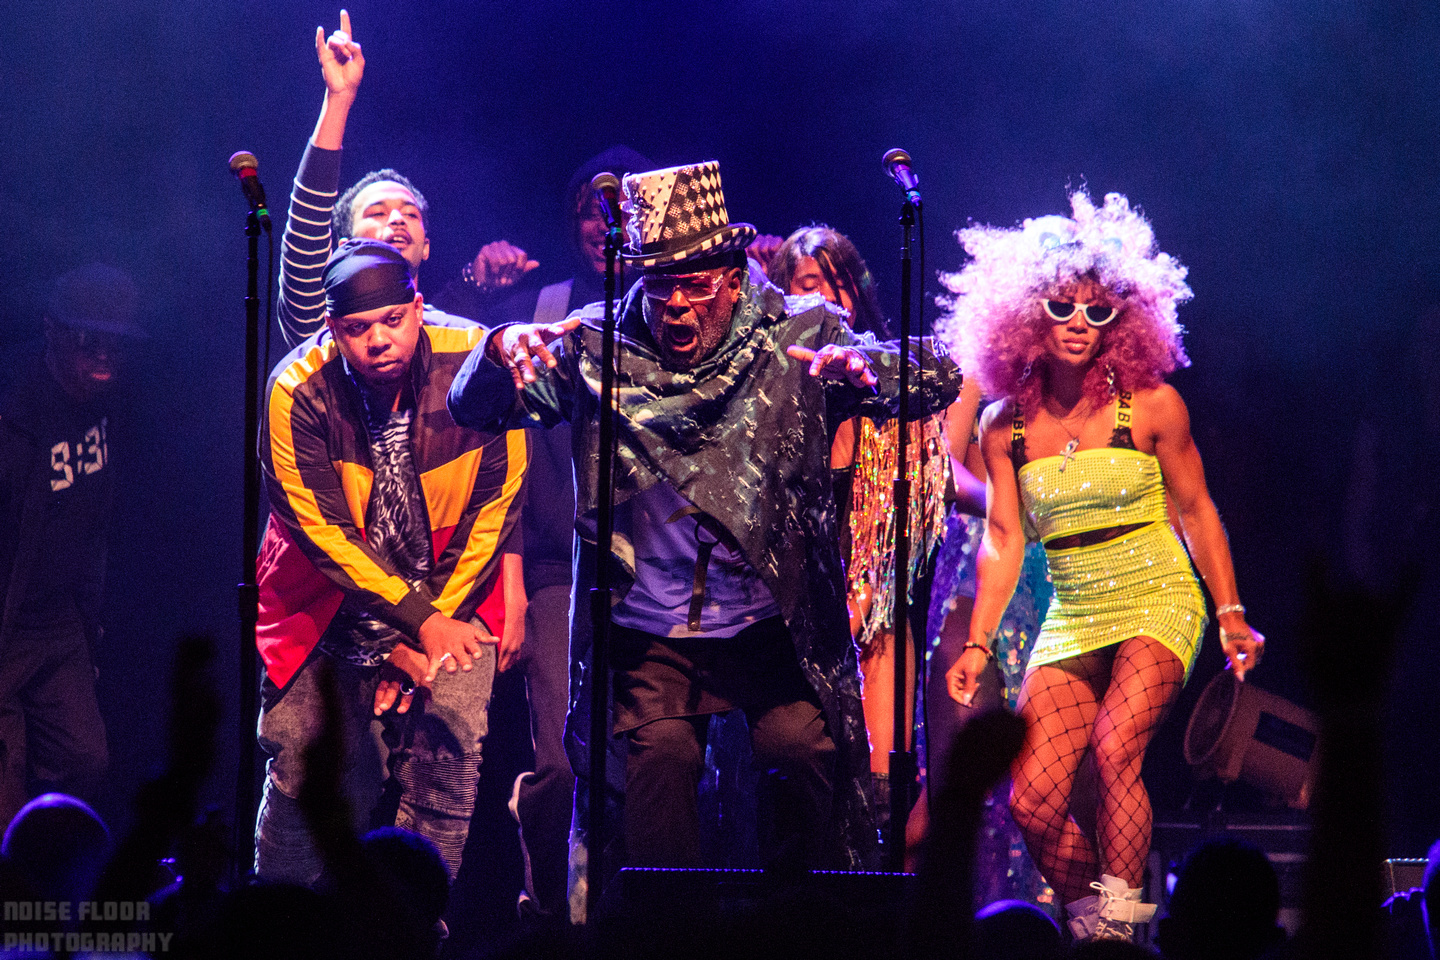 Noise Floor Photography: 2019/06/05 - George Clinton and Parliament Funkadelic &emdash;